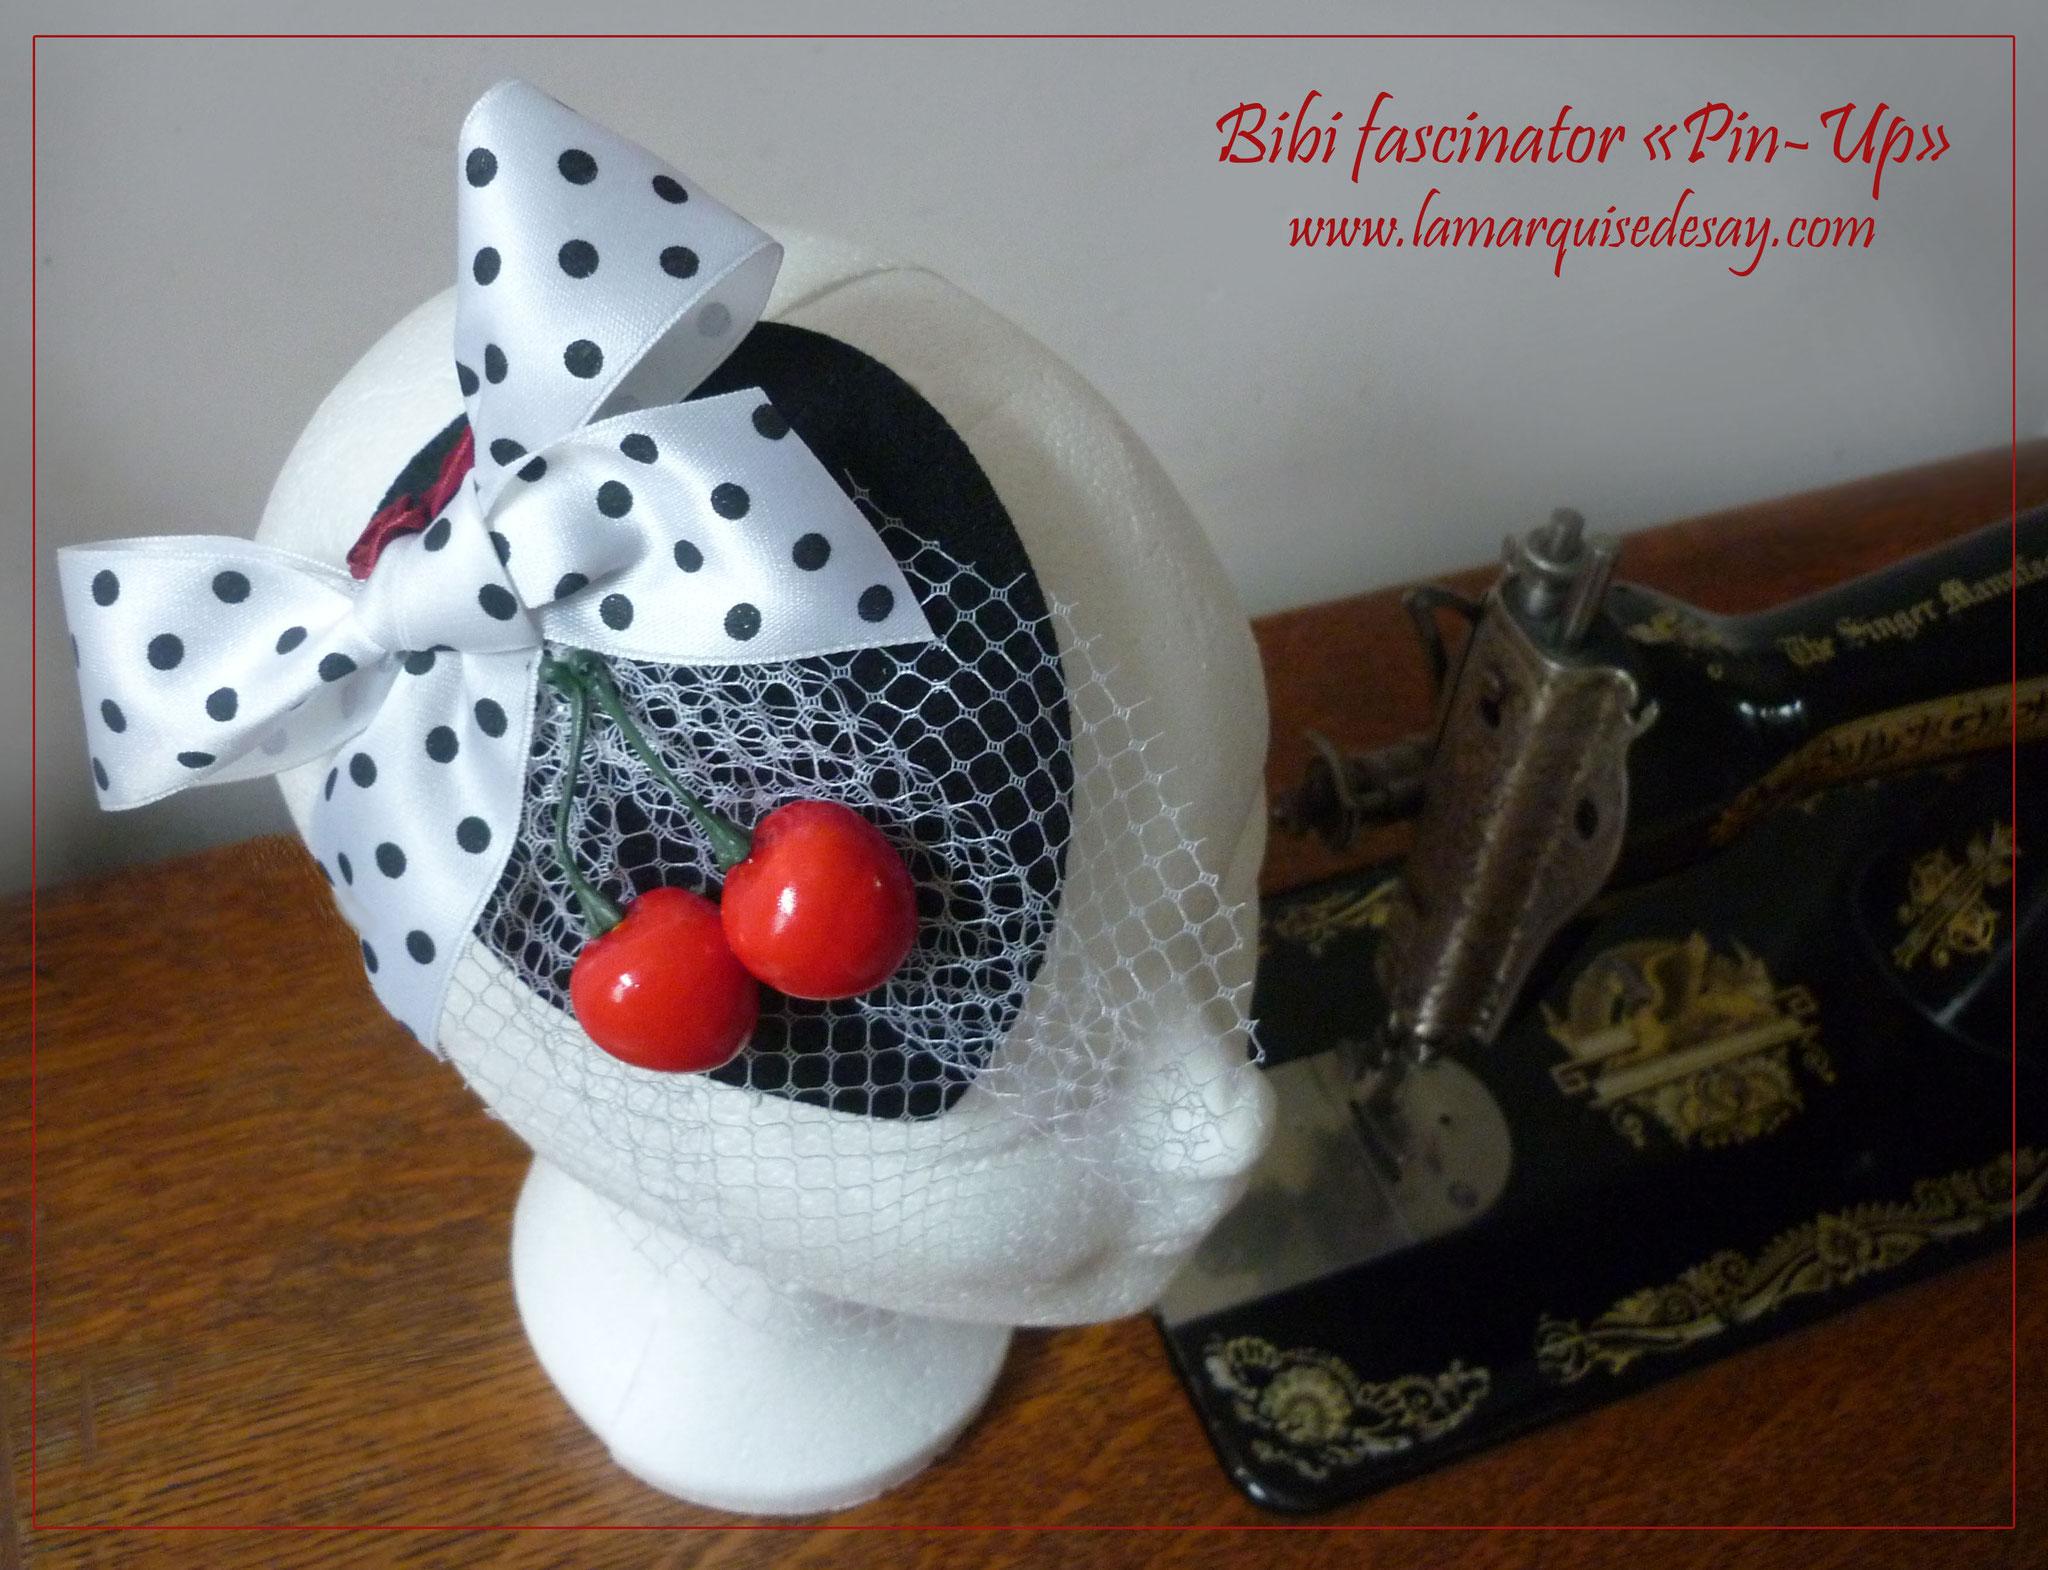 Bibi fascinator Pin Up - Feutre noir moulé